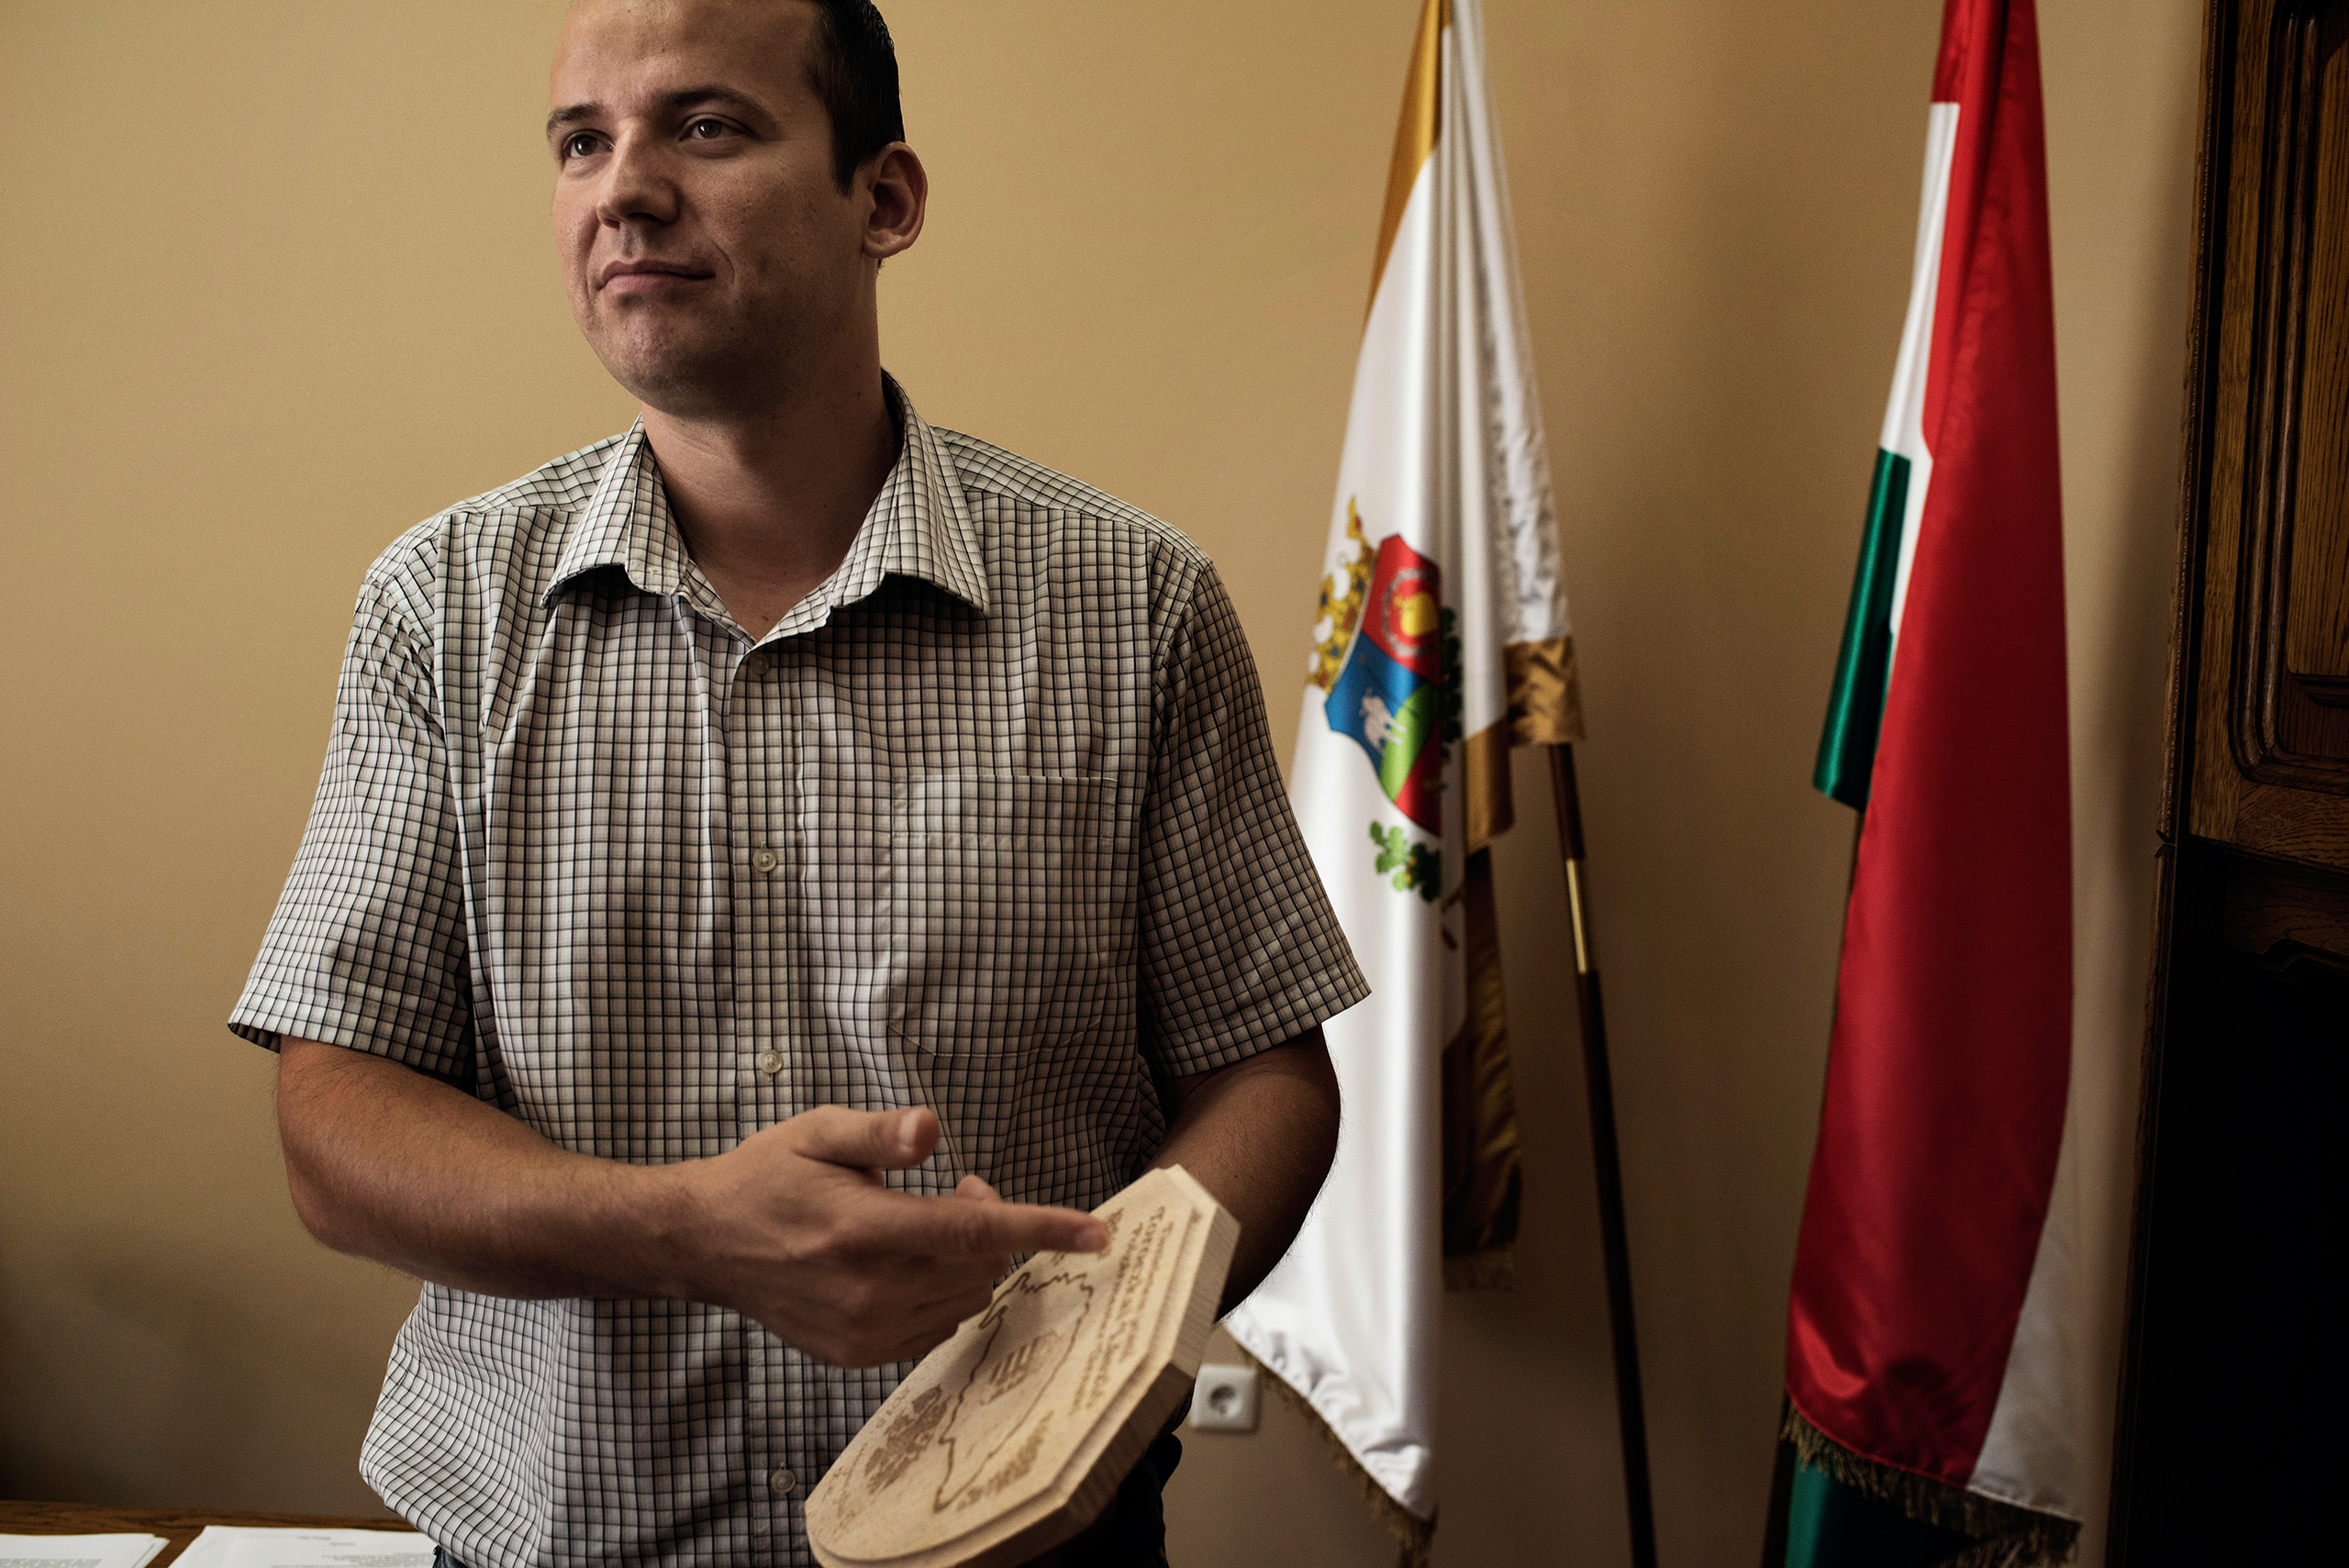 Laszlo Toroczkai, the charismatic young mayor of a Hungarian town right on the border with Serbia, in Asotthalom, September 2015. Toroczkai became a national celebrity for his extreme anti-migration and anti-Islamic views.